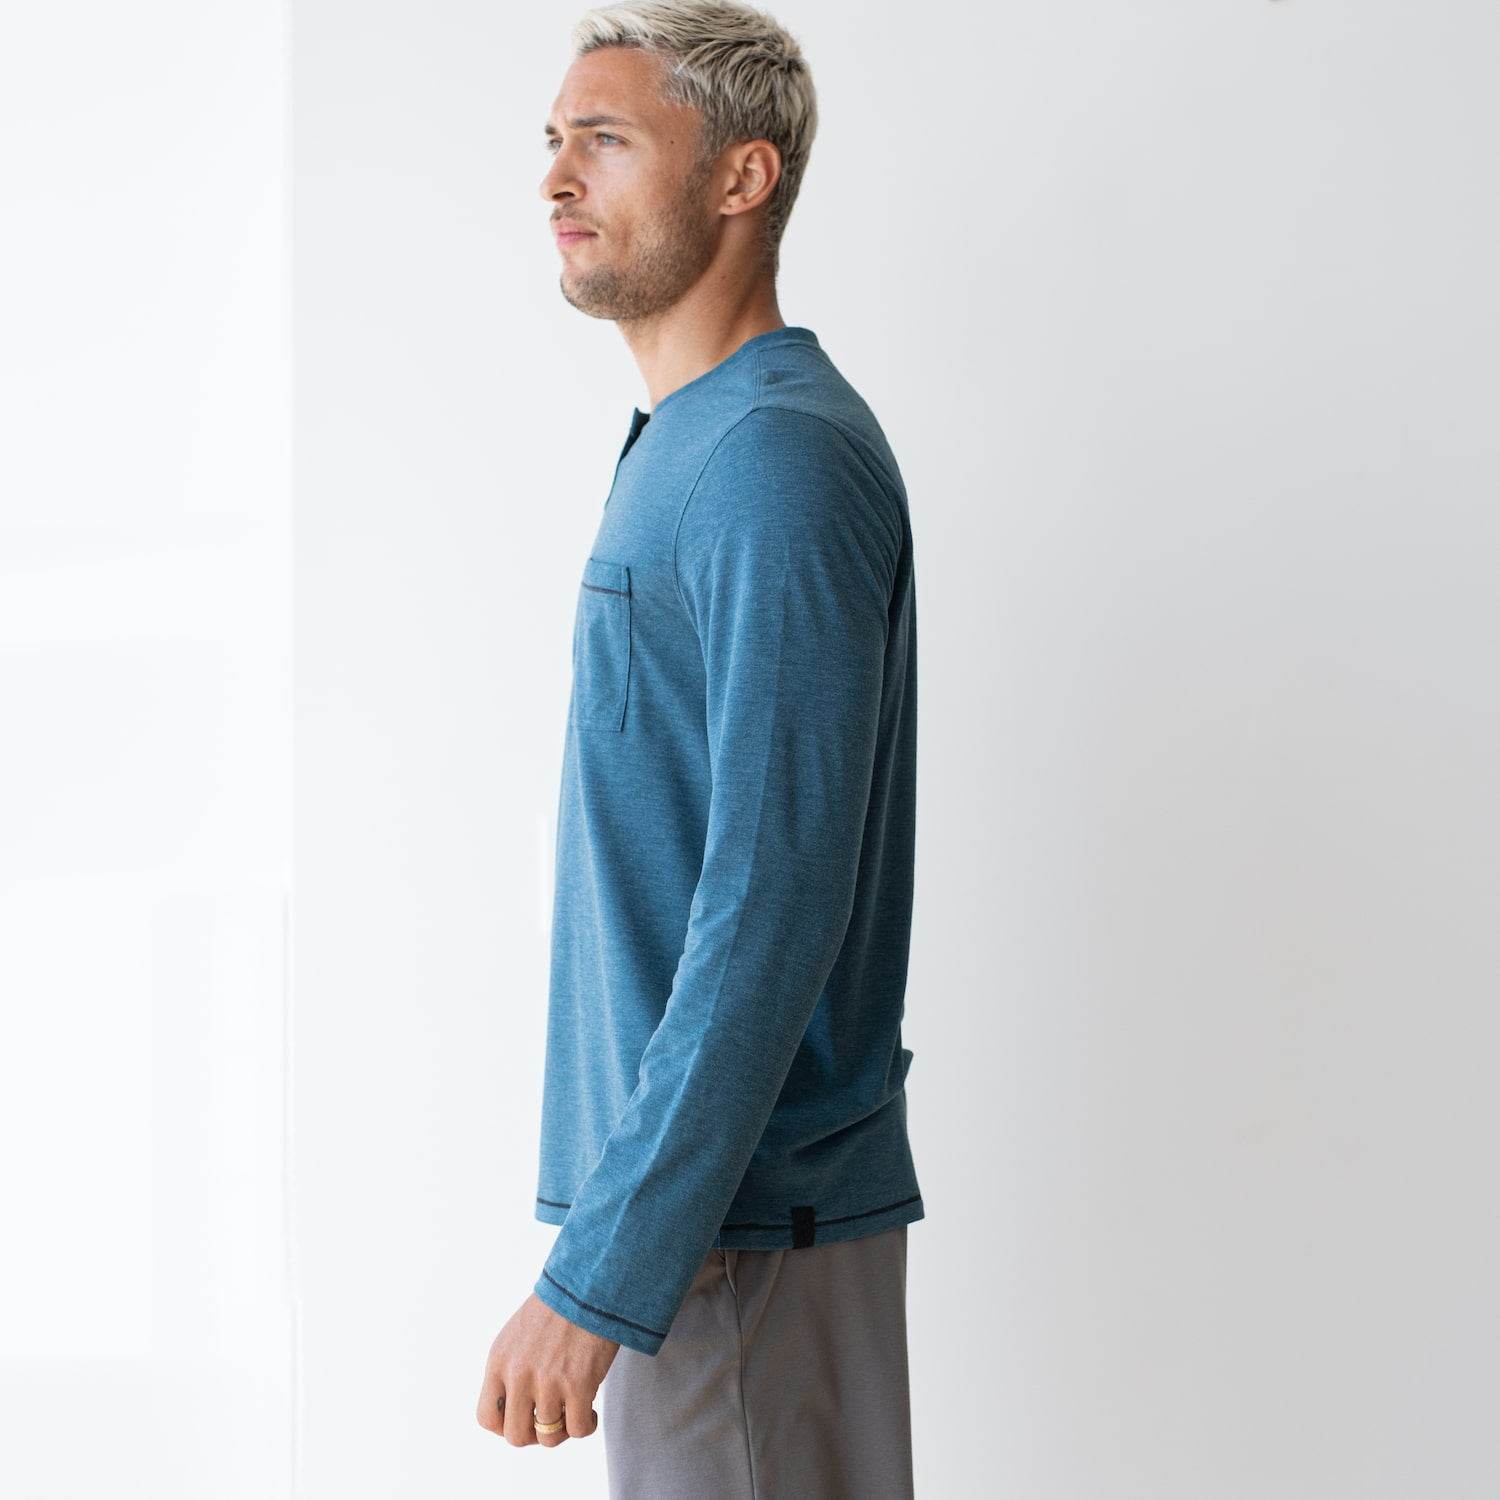 Lahgo Sleepwear Restore Long Sleeve Henley - #Lake